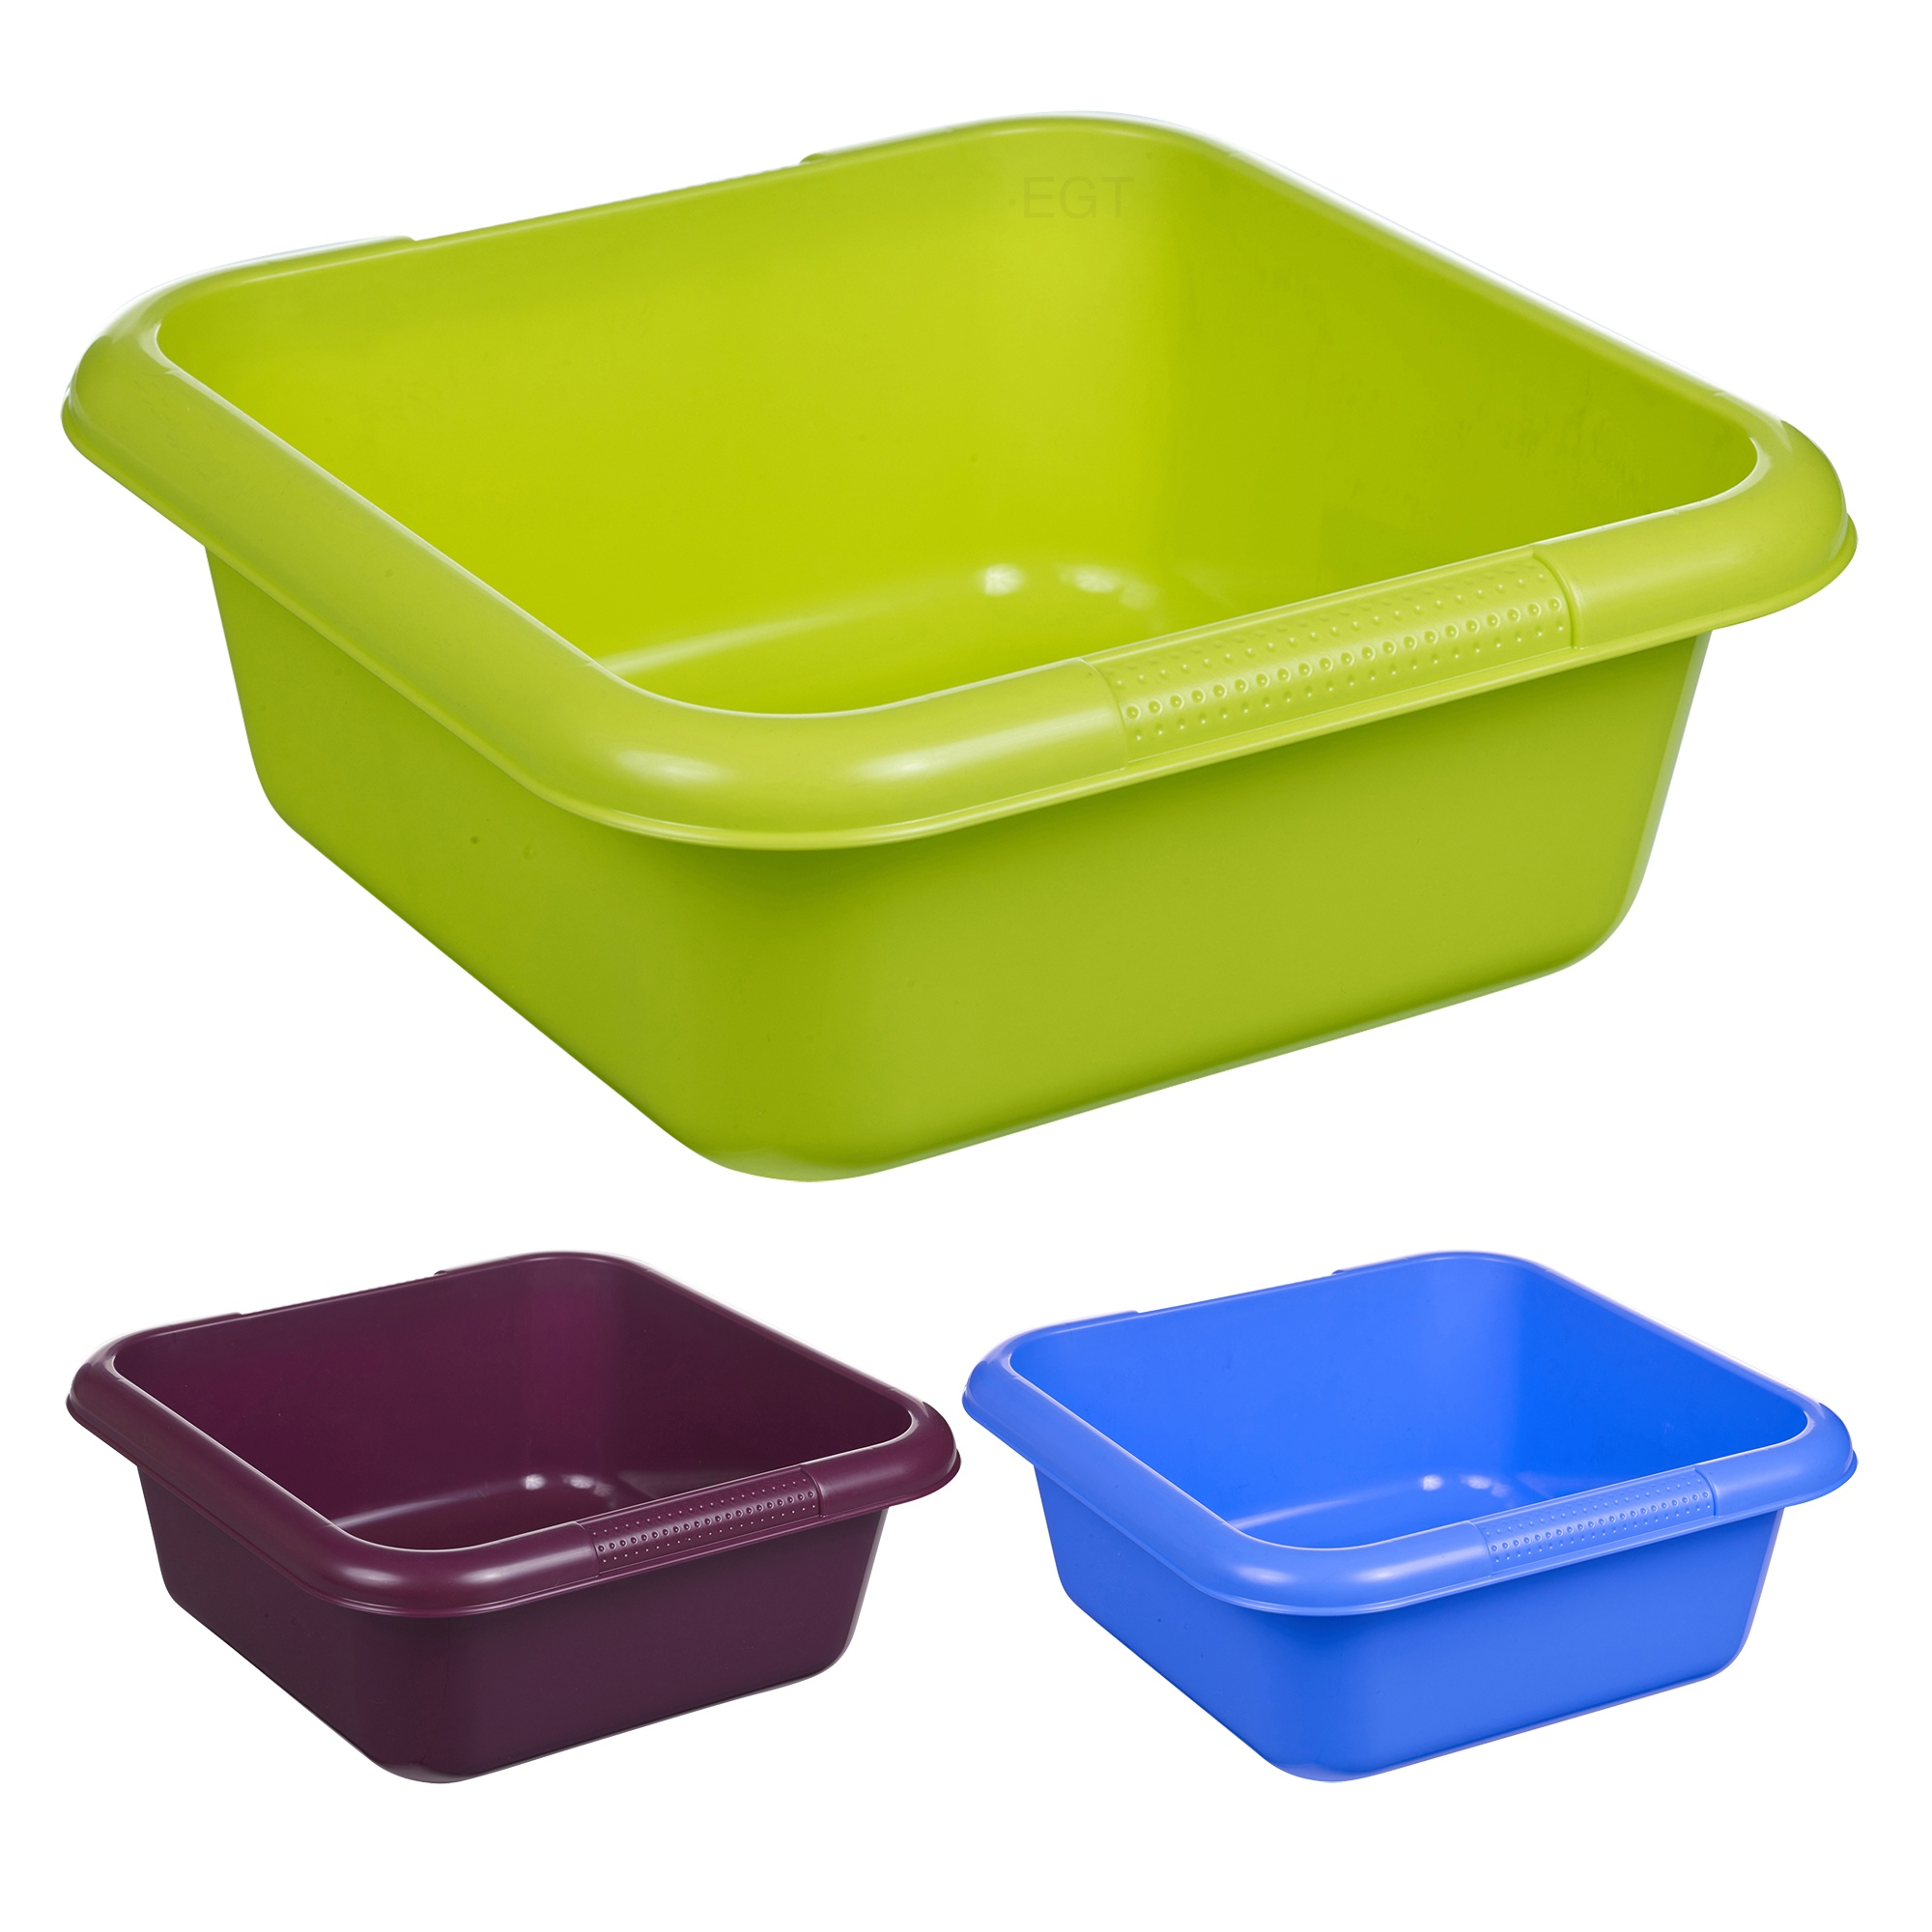 Square Sink Bowl : Details about Square Washing Up Bowl Stackable Kitchen Sink Plastic ...